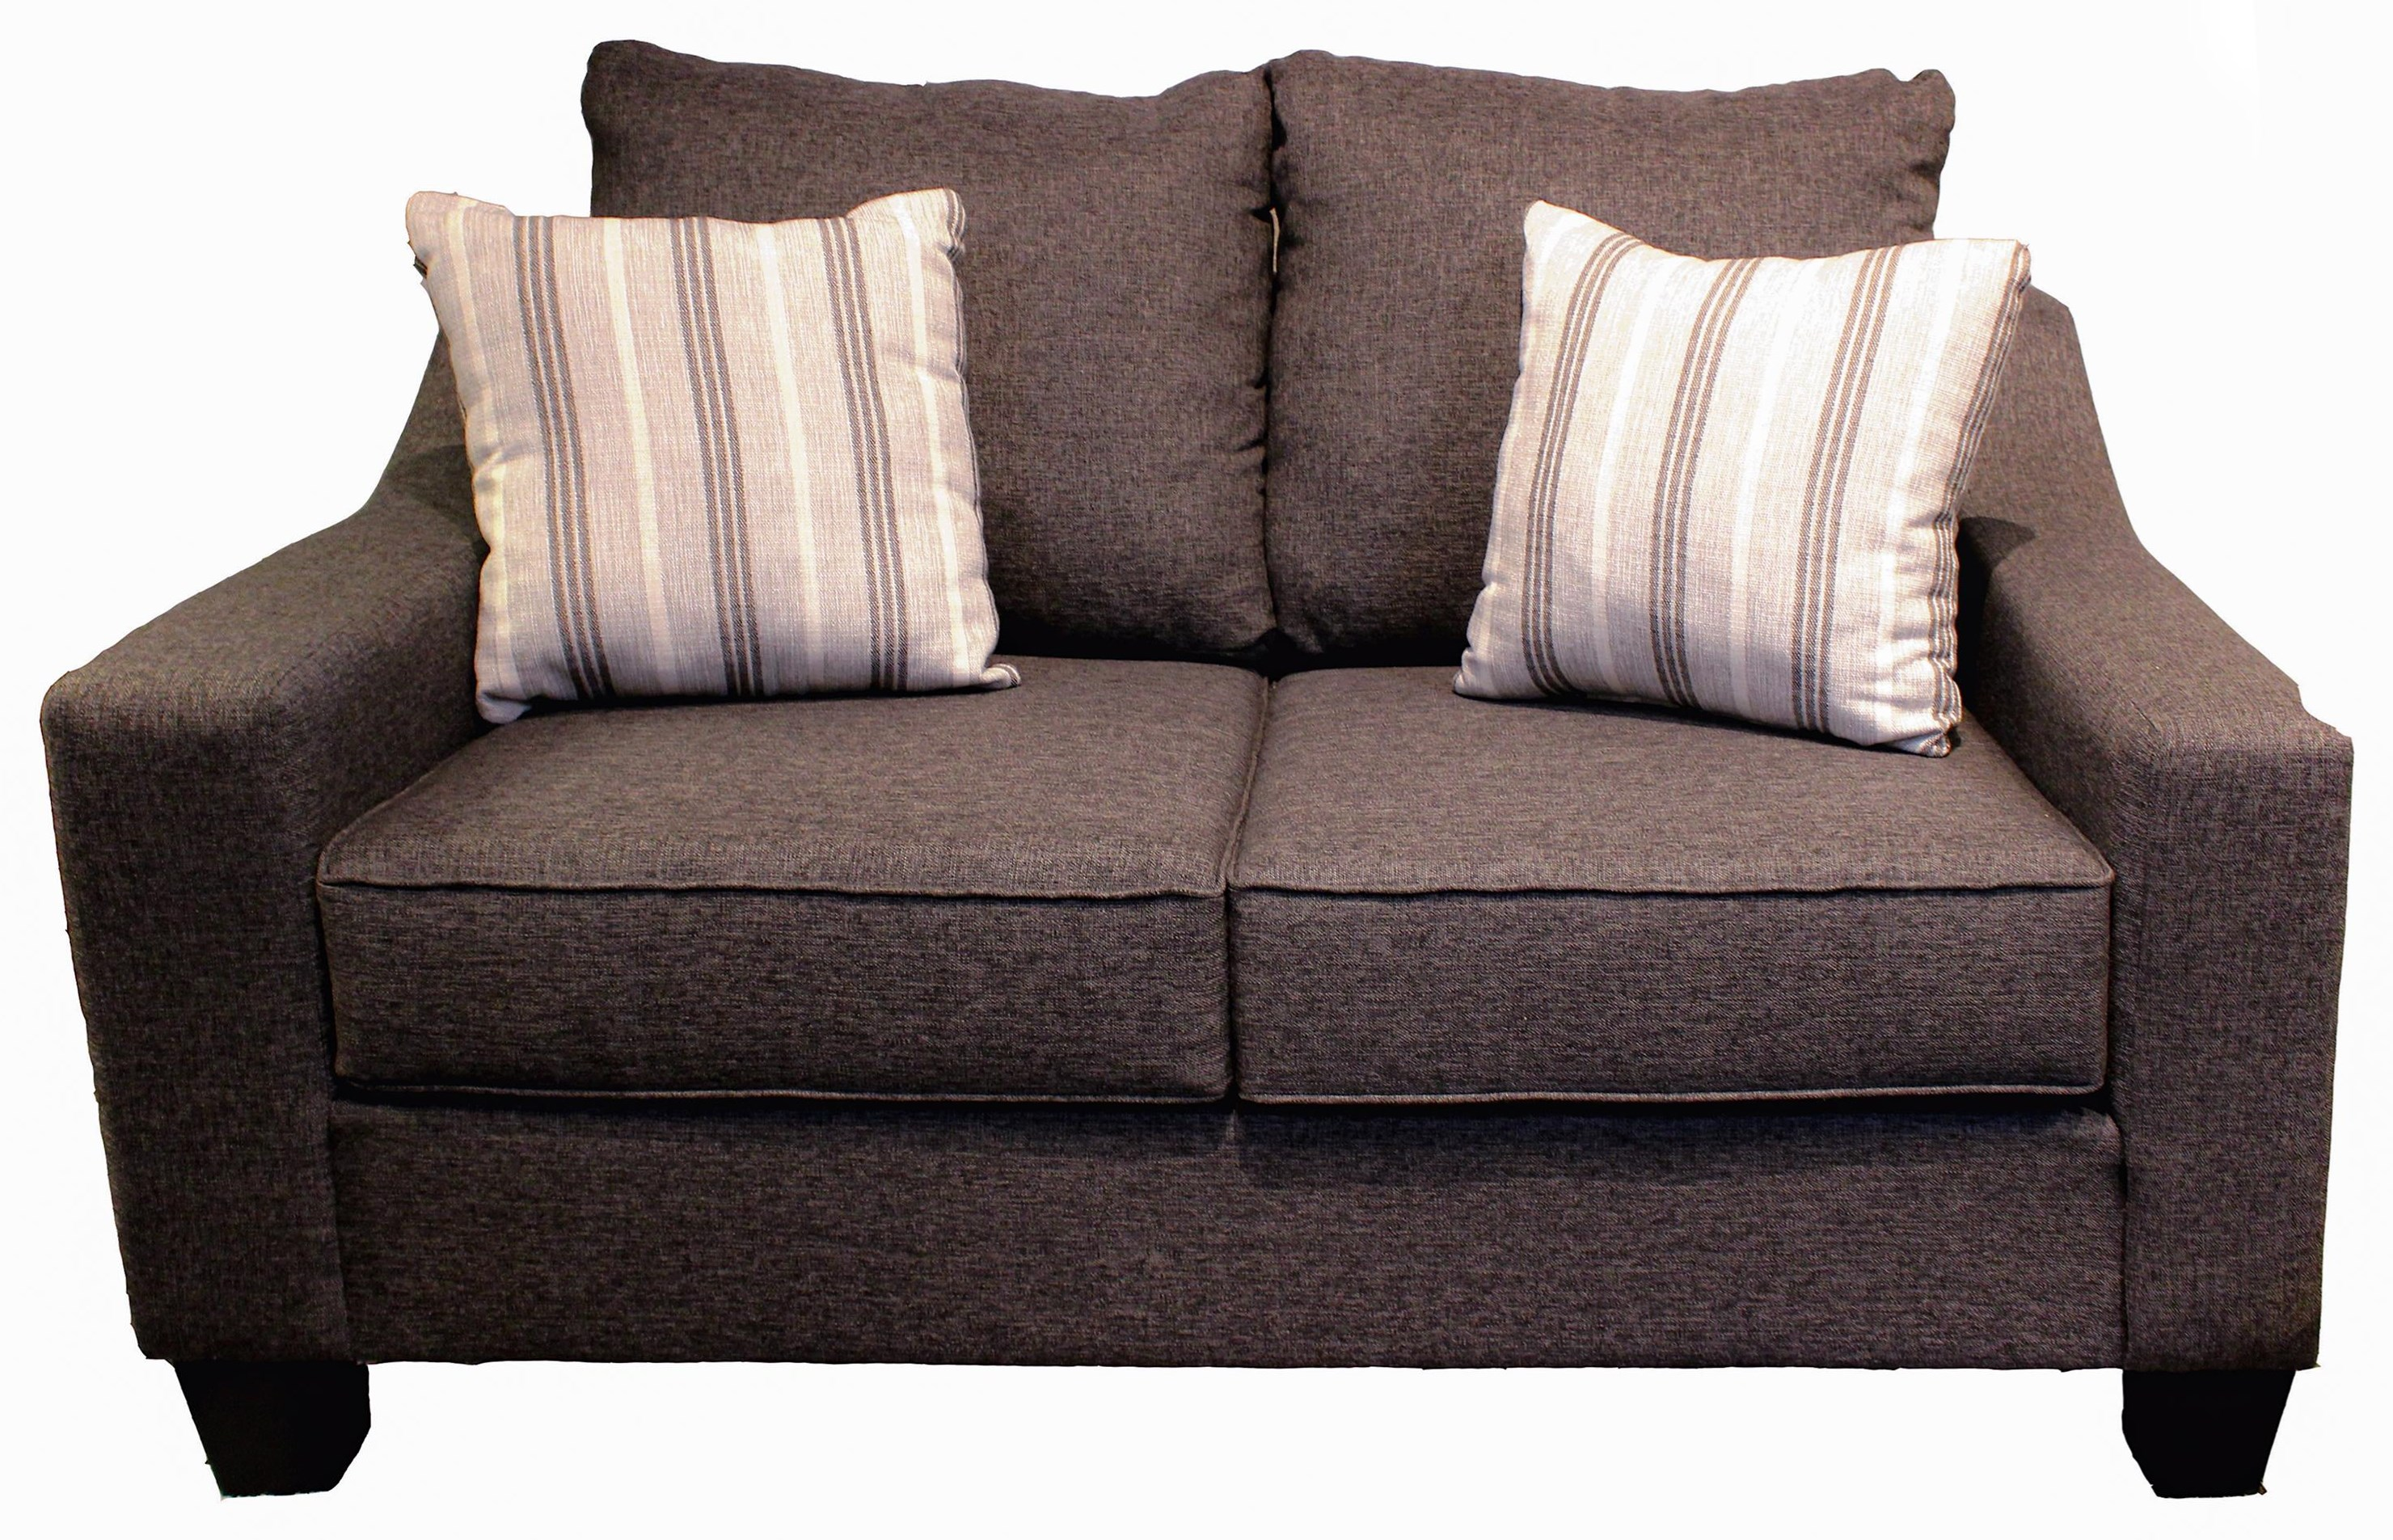 Lucy Splash Charcoal Loveseat by Michael Nicholas at Beck's Furniture